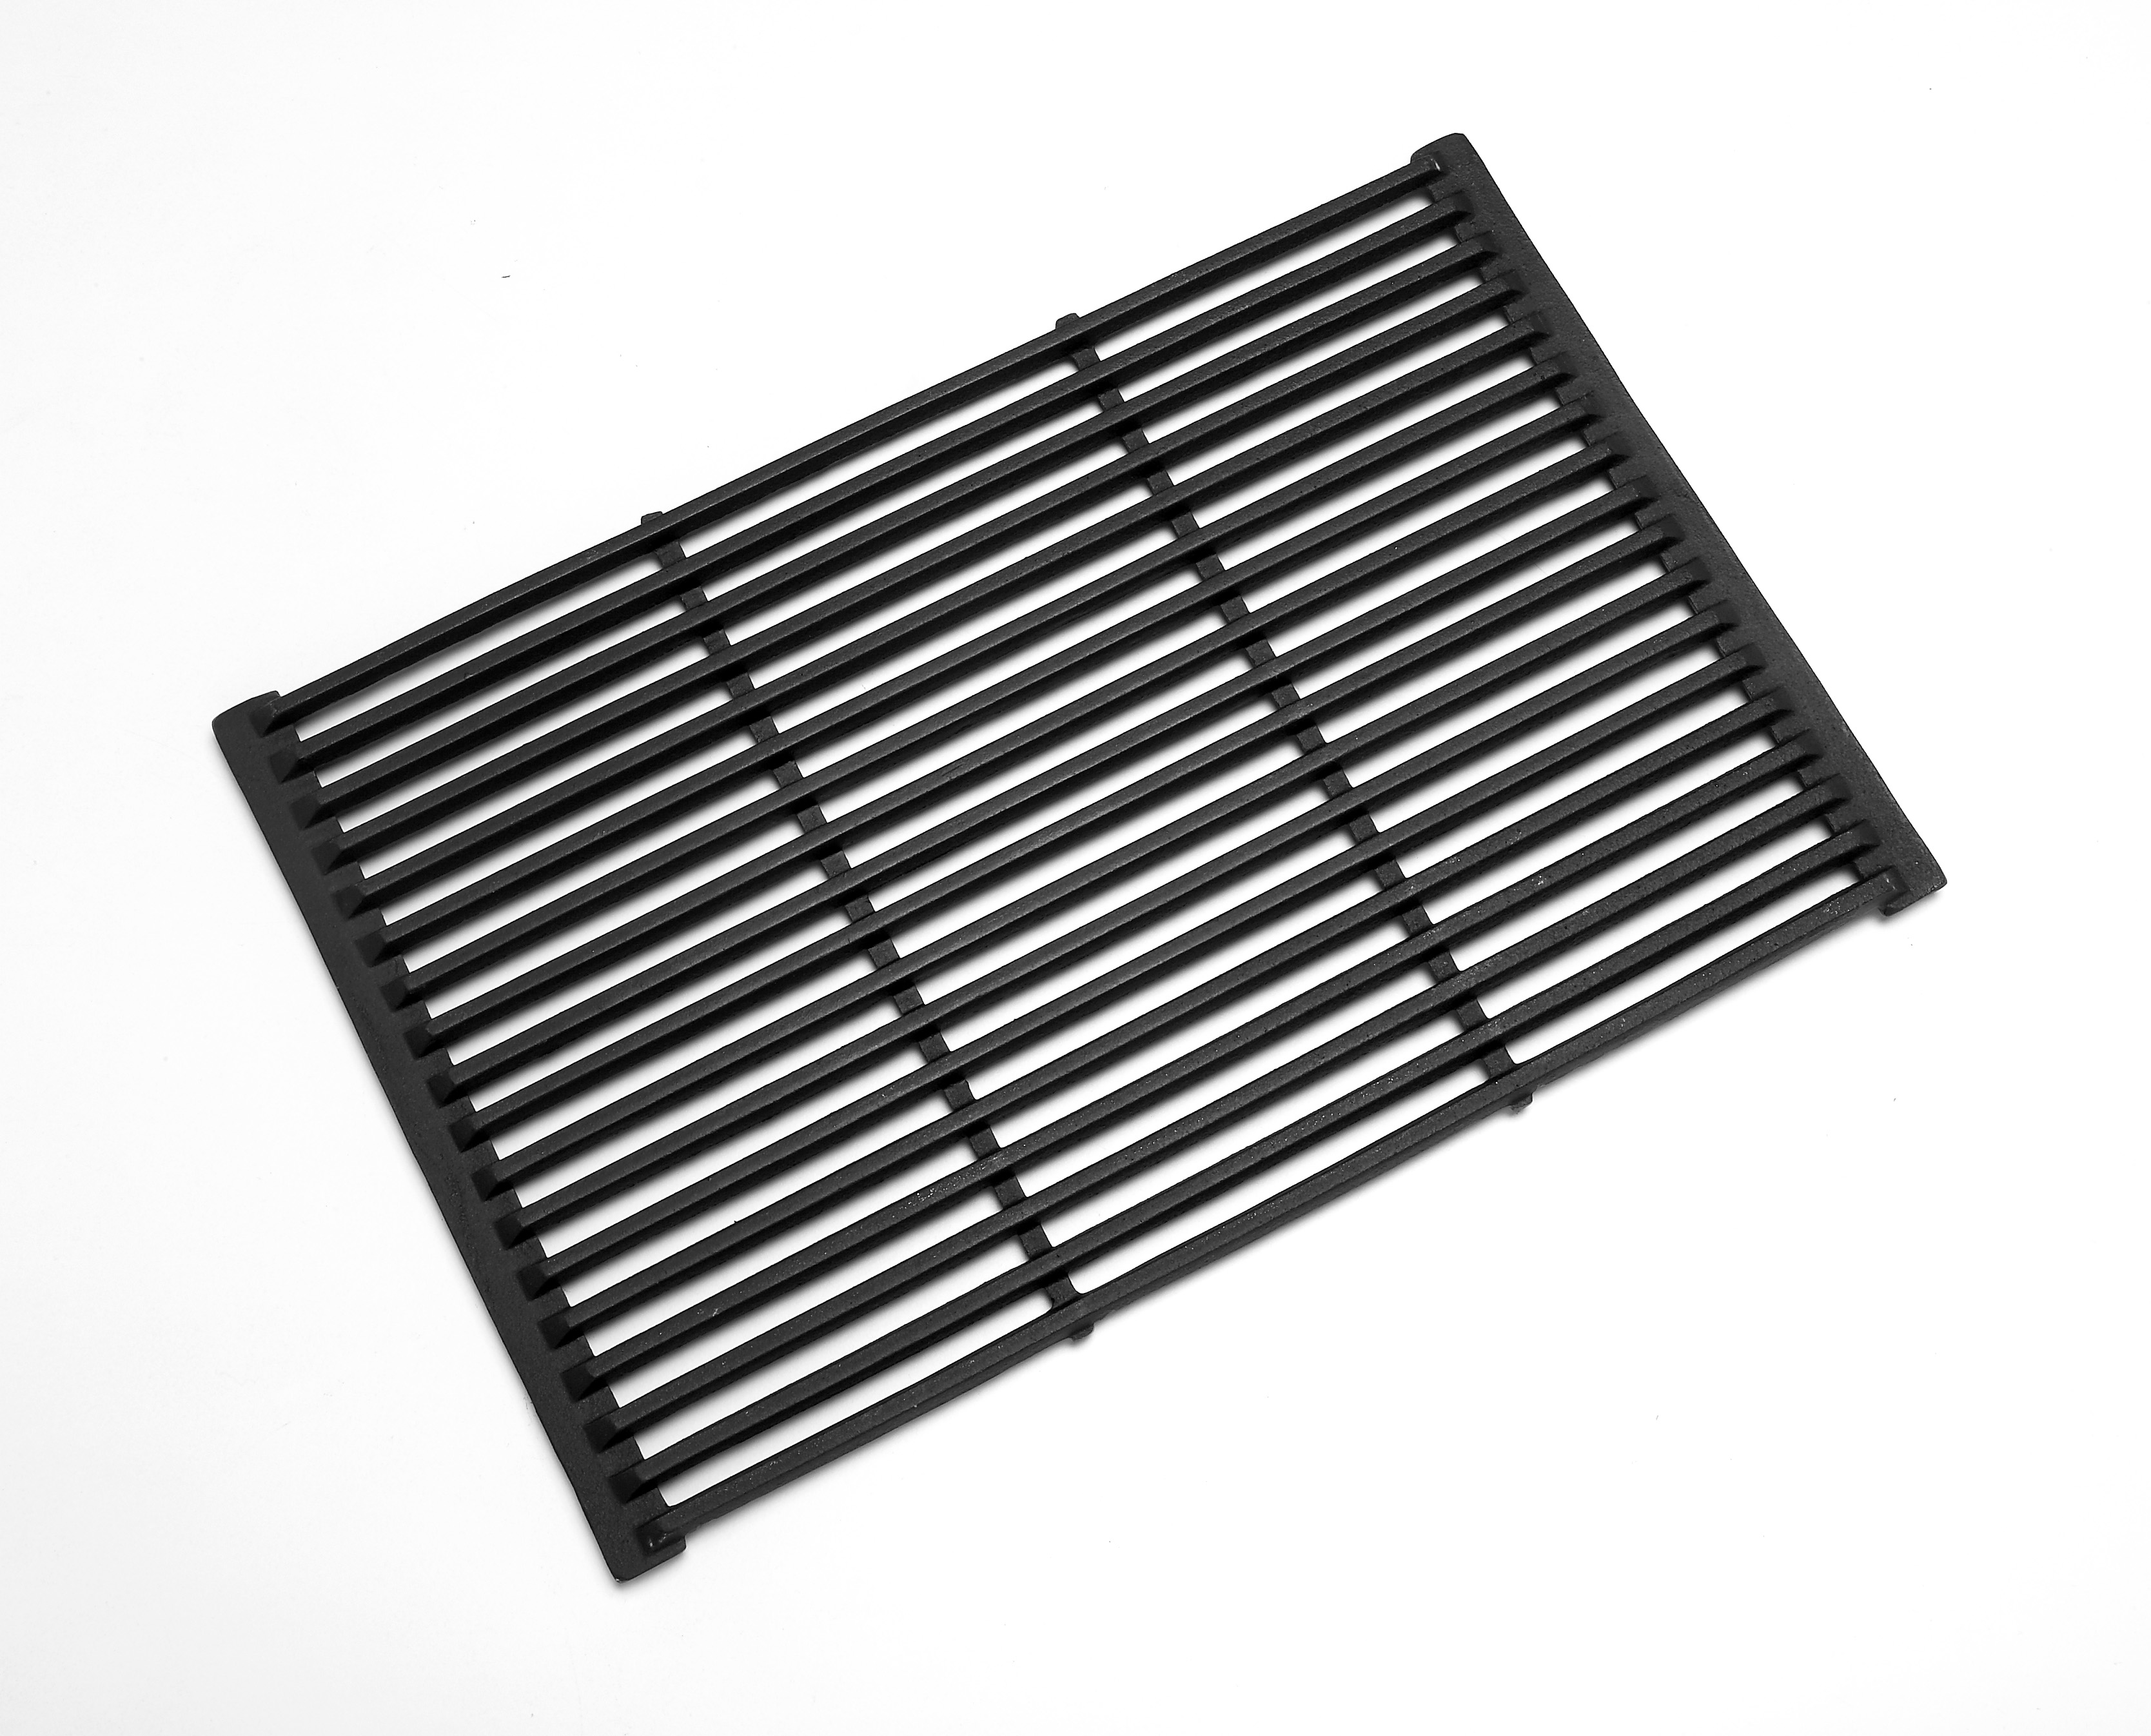 320mm x 485mm grill - ceramic coated, to suit 3B & 6B BBQ